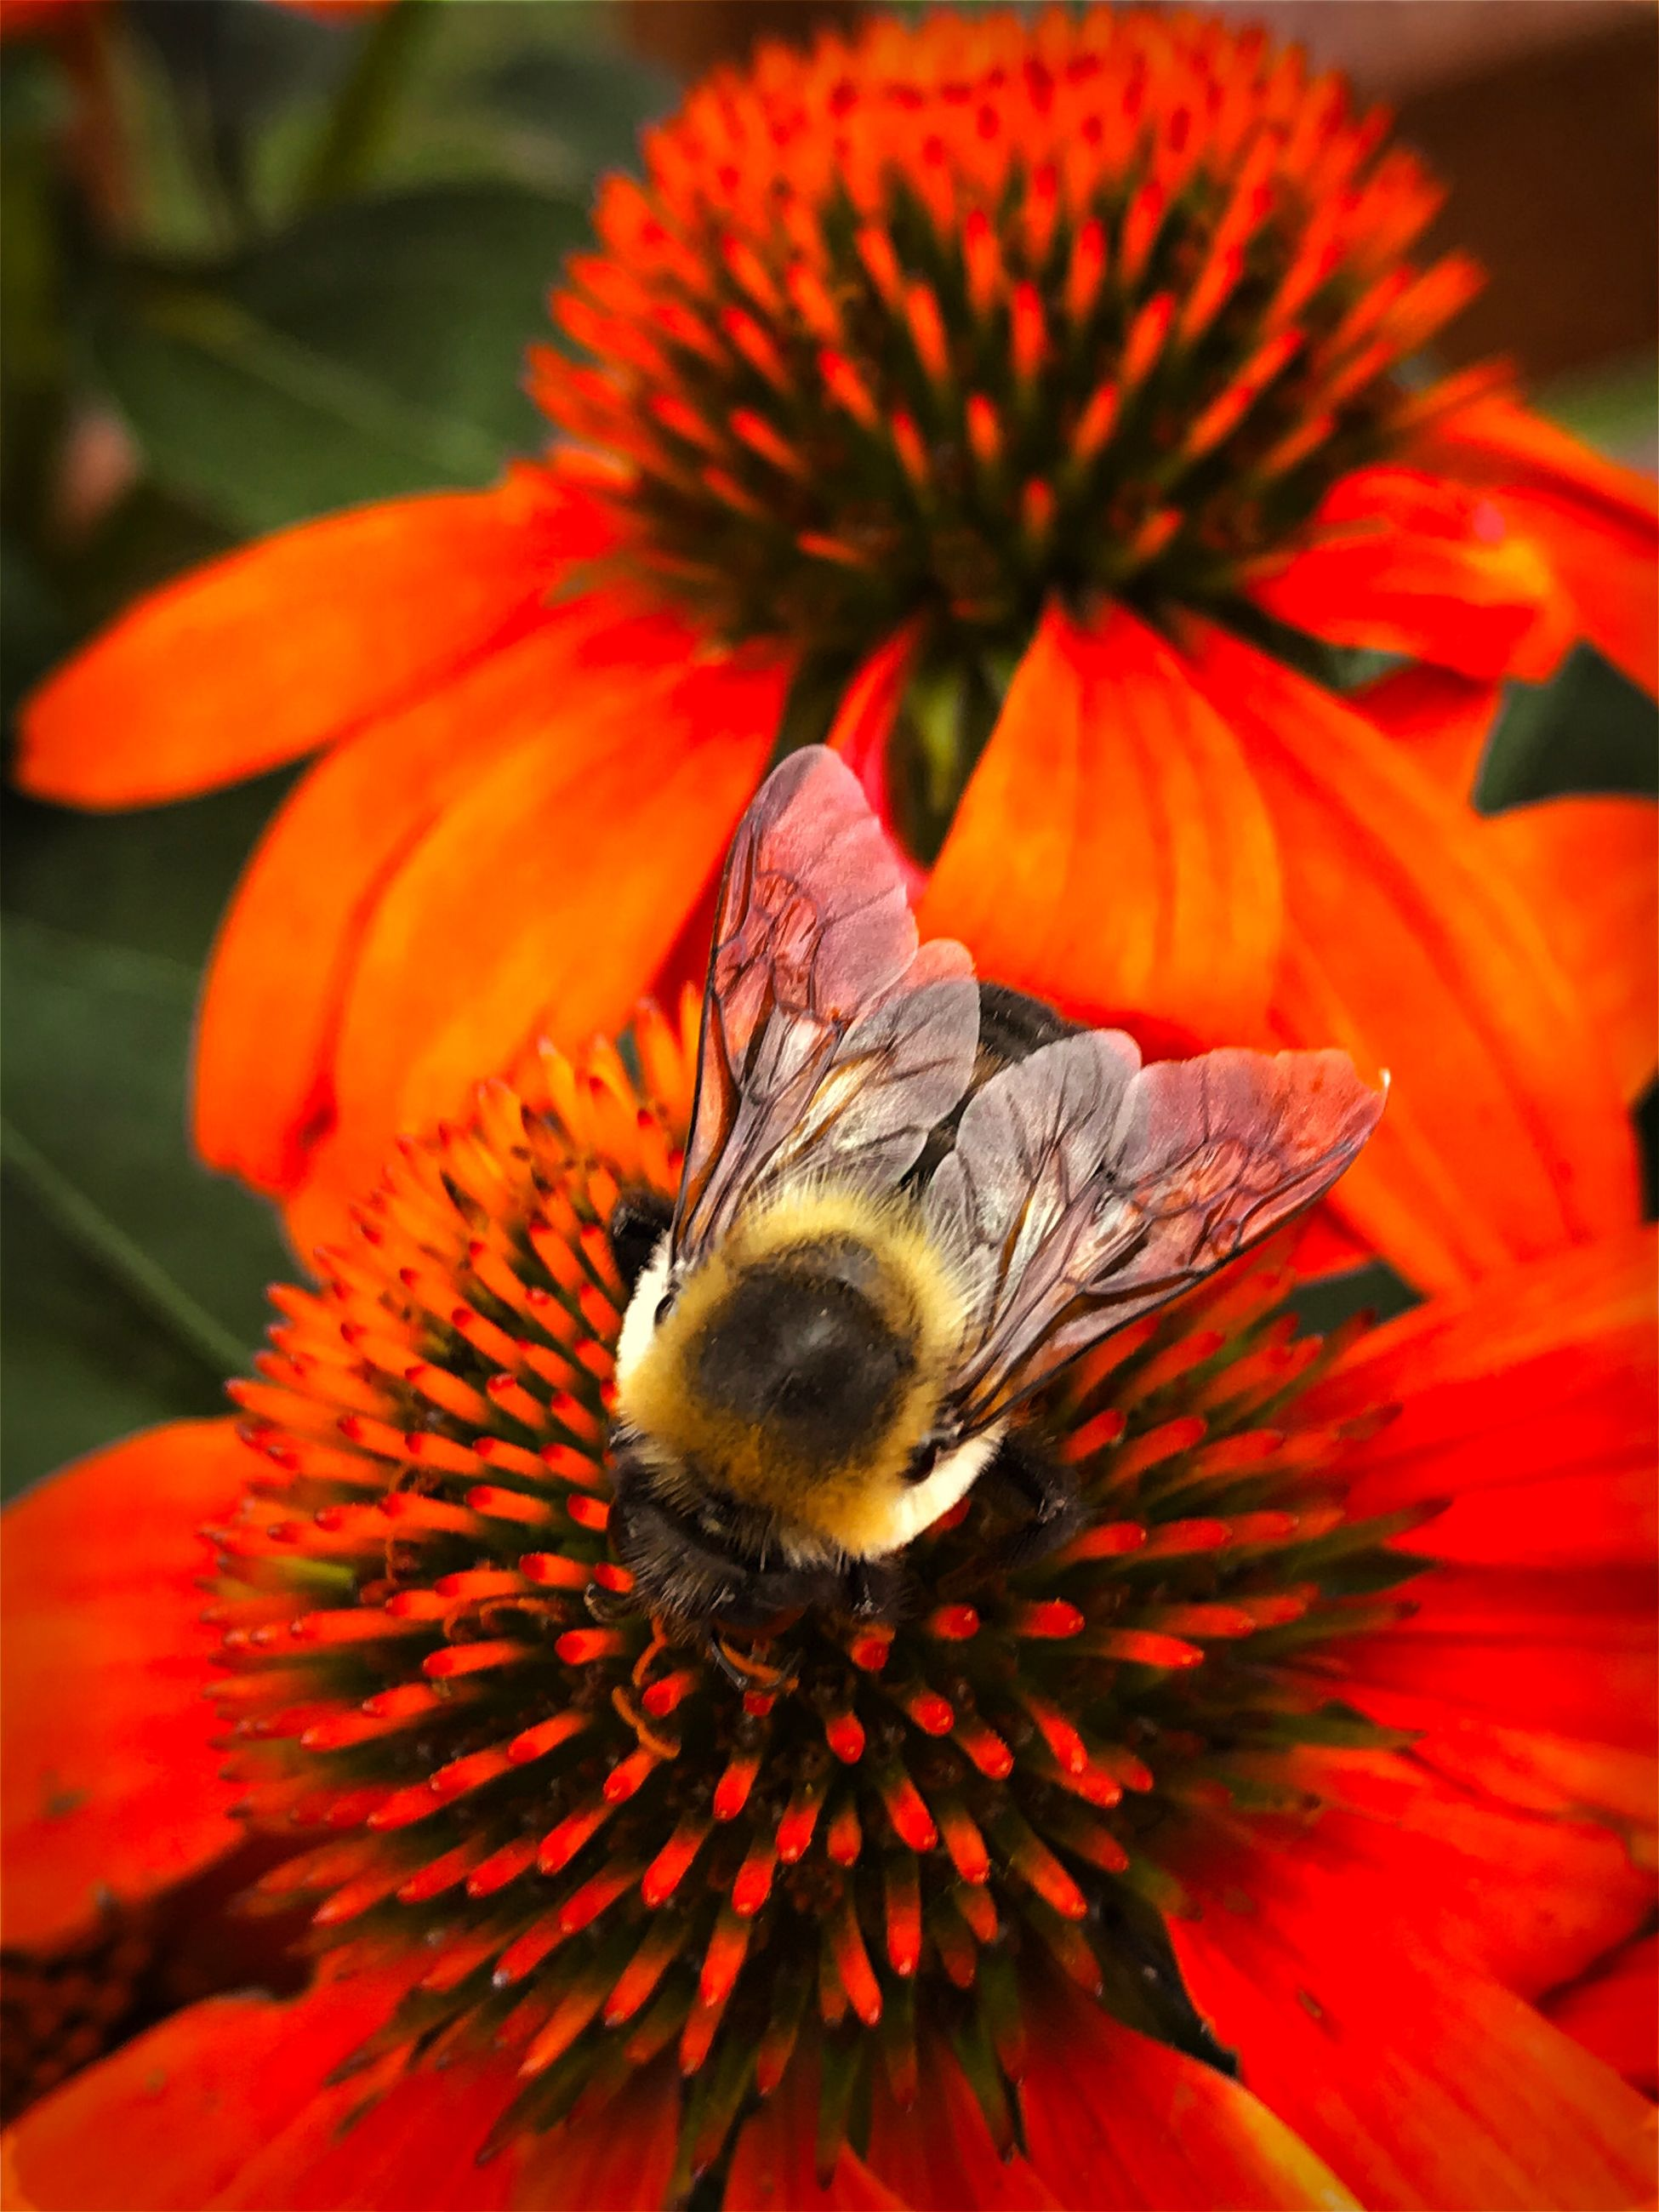 flowering plant, flower, petal, fragility, flower head, beauty in nature, animal themes, one animal, vulnerability, insect, animal wildlife, animals in the wild, invertebrate, freshness, animal, close-up, plant, inflorescence, growth, bee, pollination, pollen, no people, bumblebee